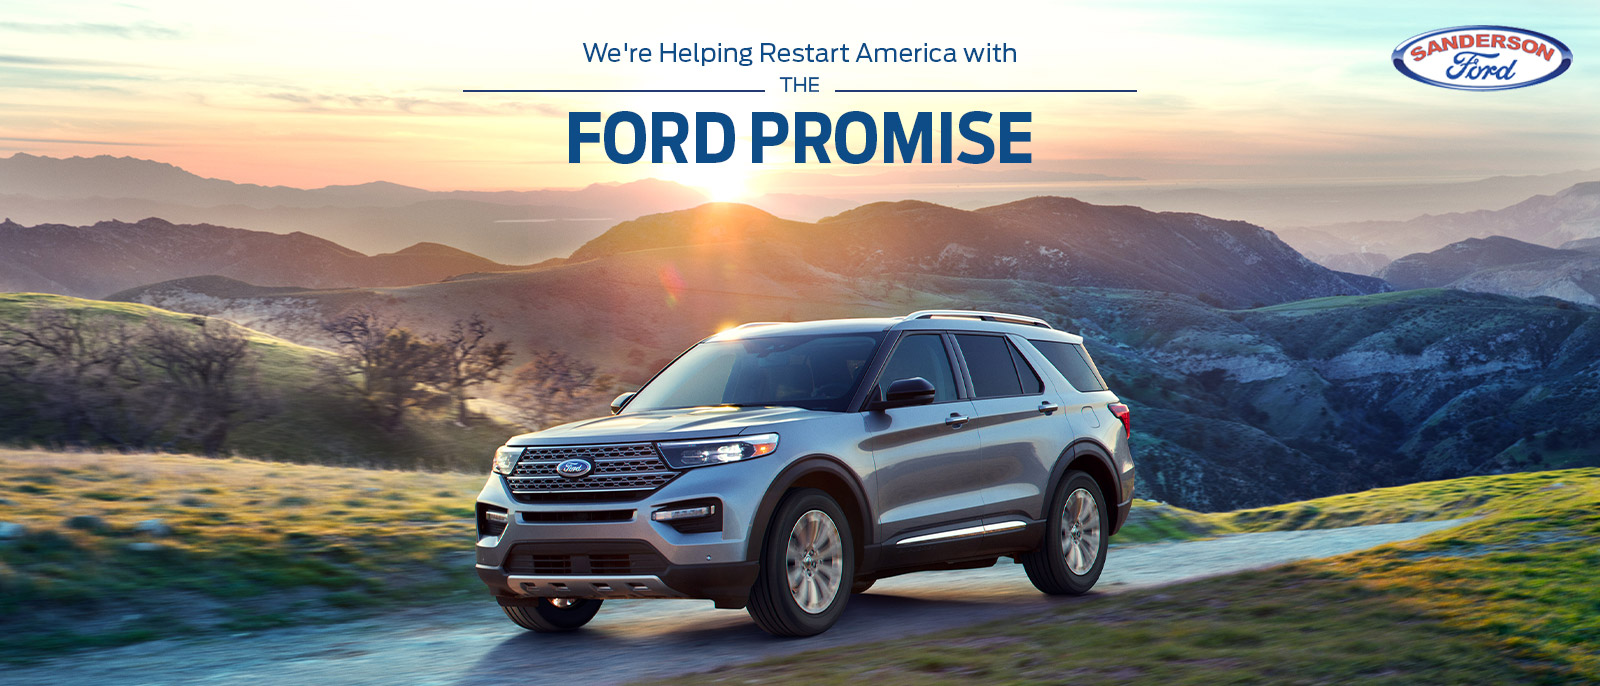 Ford Promise at Sanderson Ford in Glendale, AZ